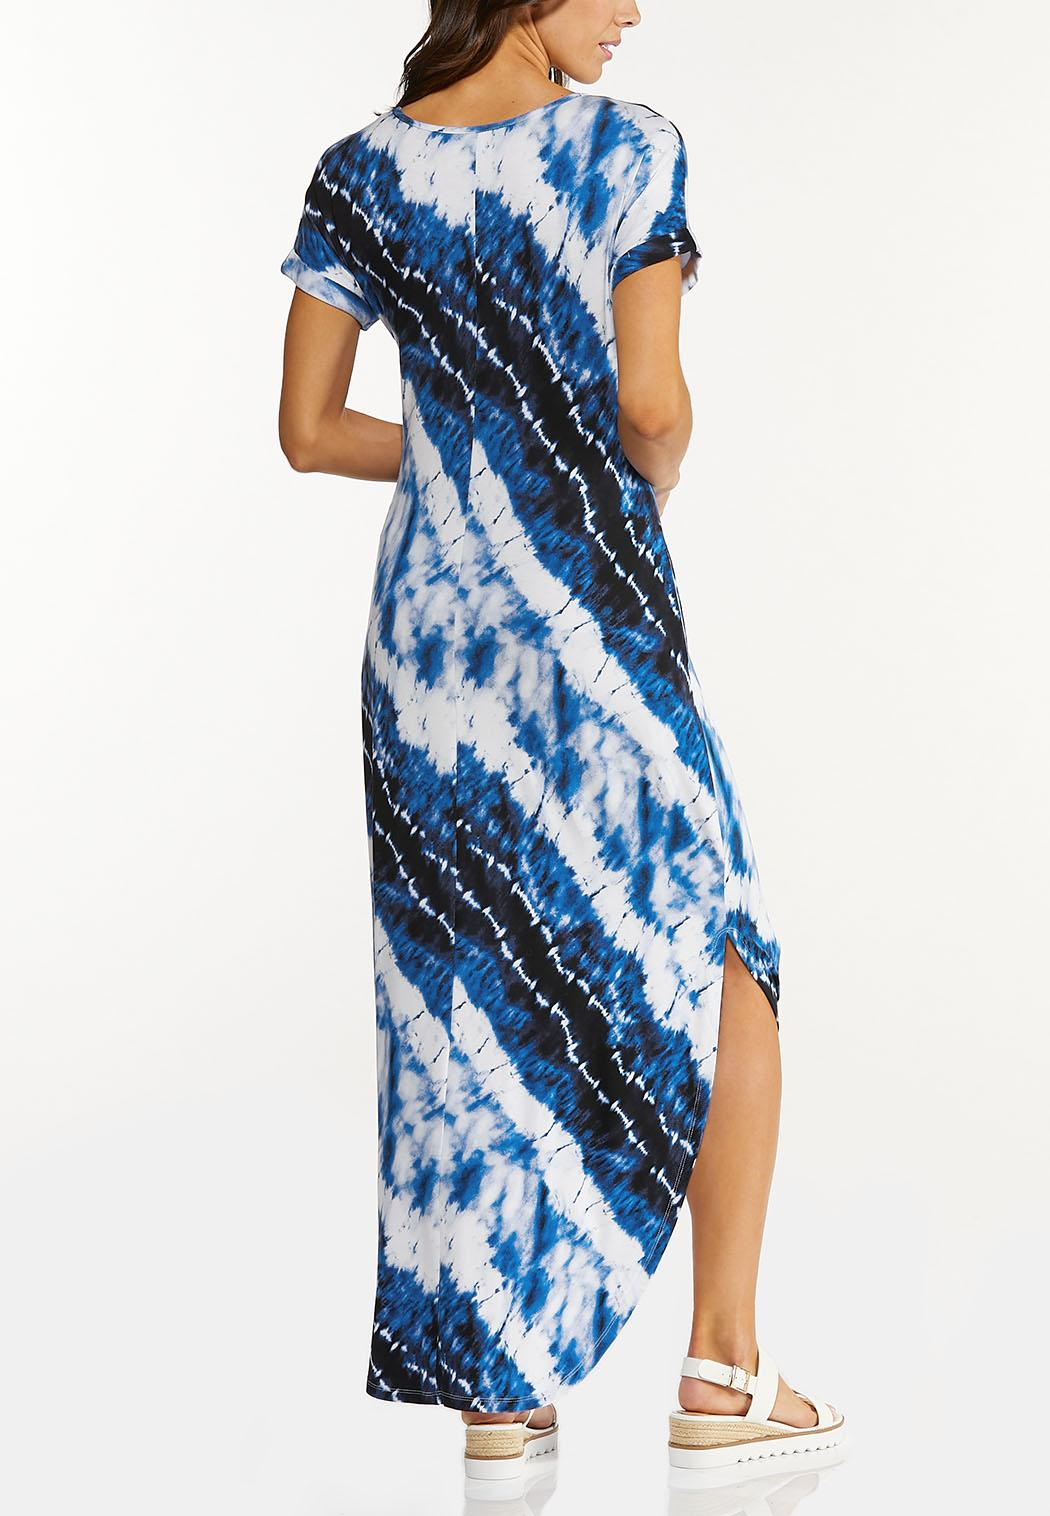 Knotted Tie Dye Maxi Dress (Item #44551173)